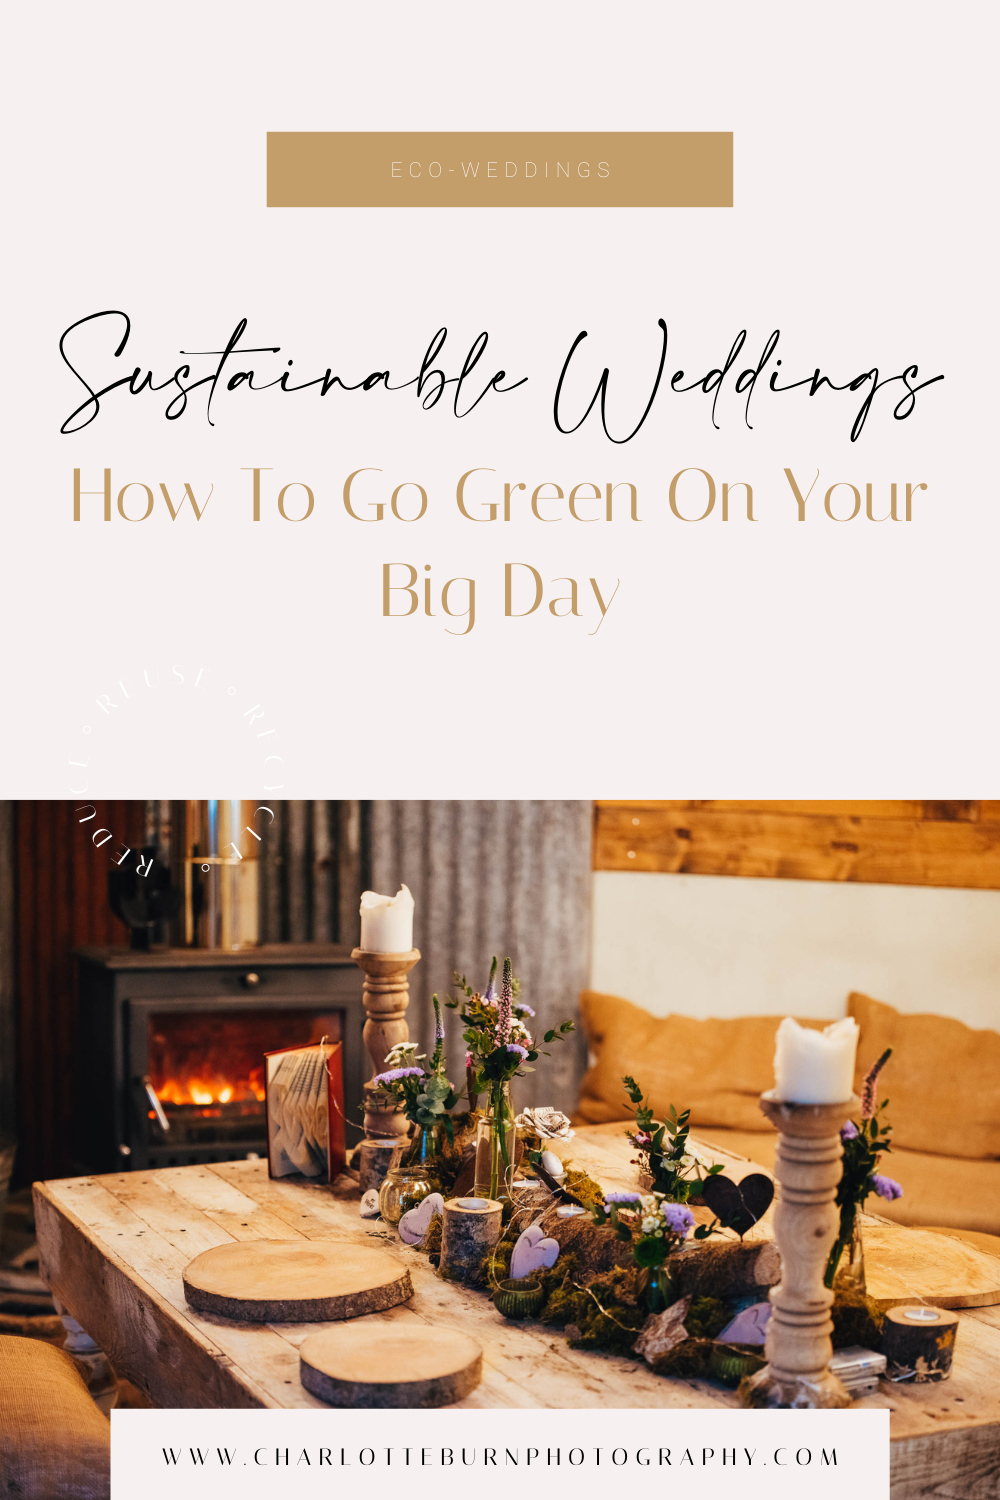 Sustainable Weddings: How To Go Green On Your Big Day